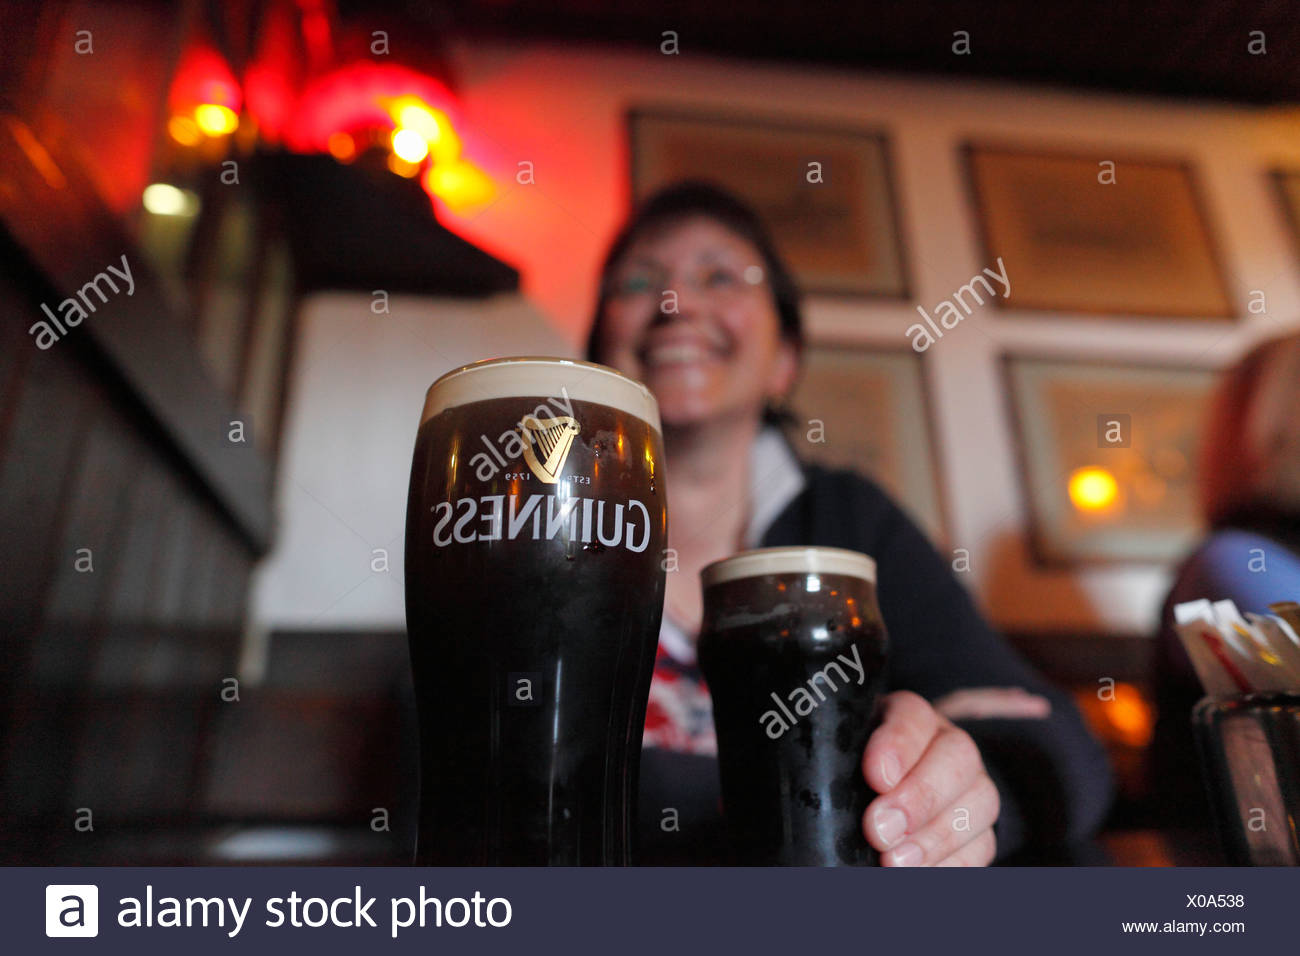 Pint of Guinness stout, Durty Nelly's pub, Bunratty, County Clare, Ireland, British Isles, Europe - Stock Image